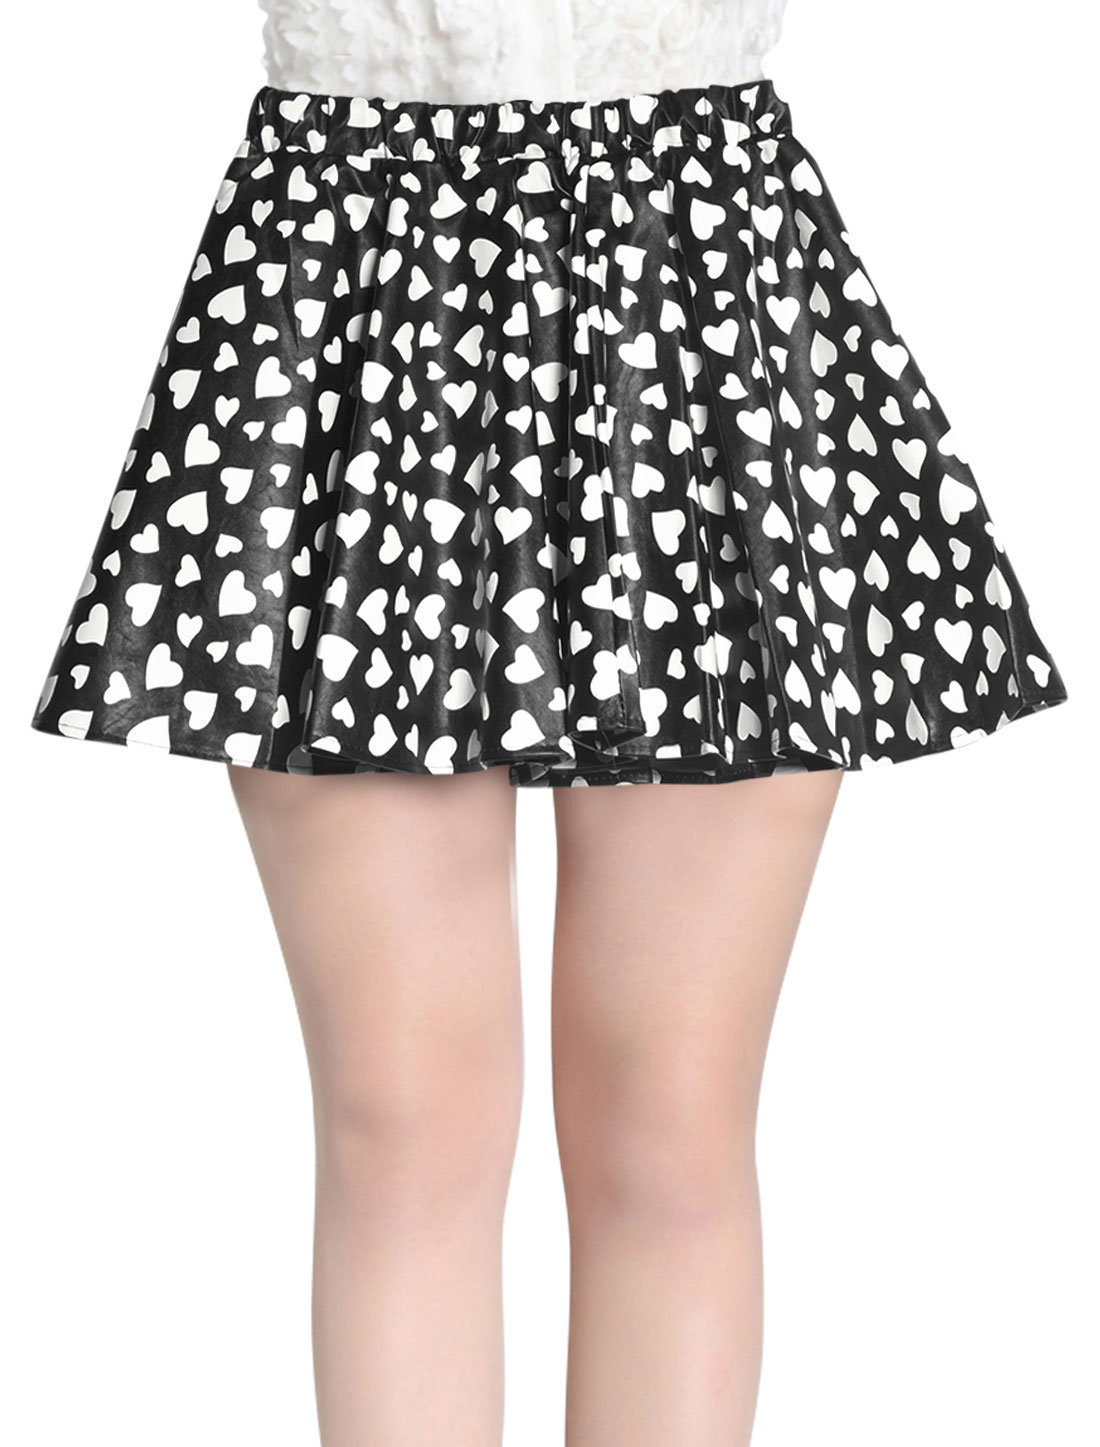 Women Hearts Prints Elastic Waist Imitation Leather Skirt Black White S